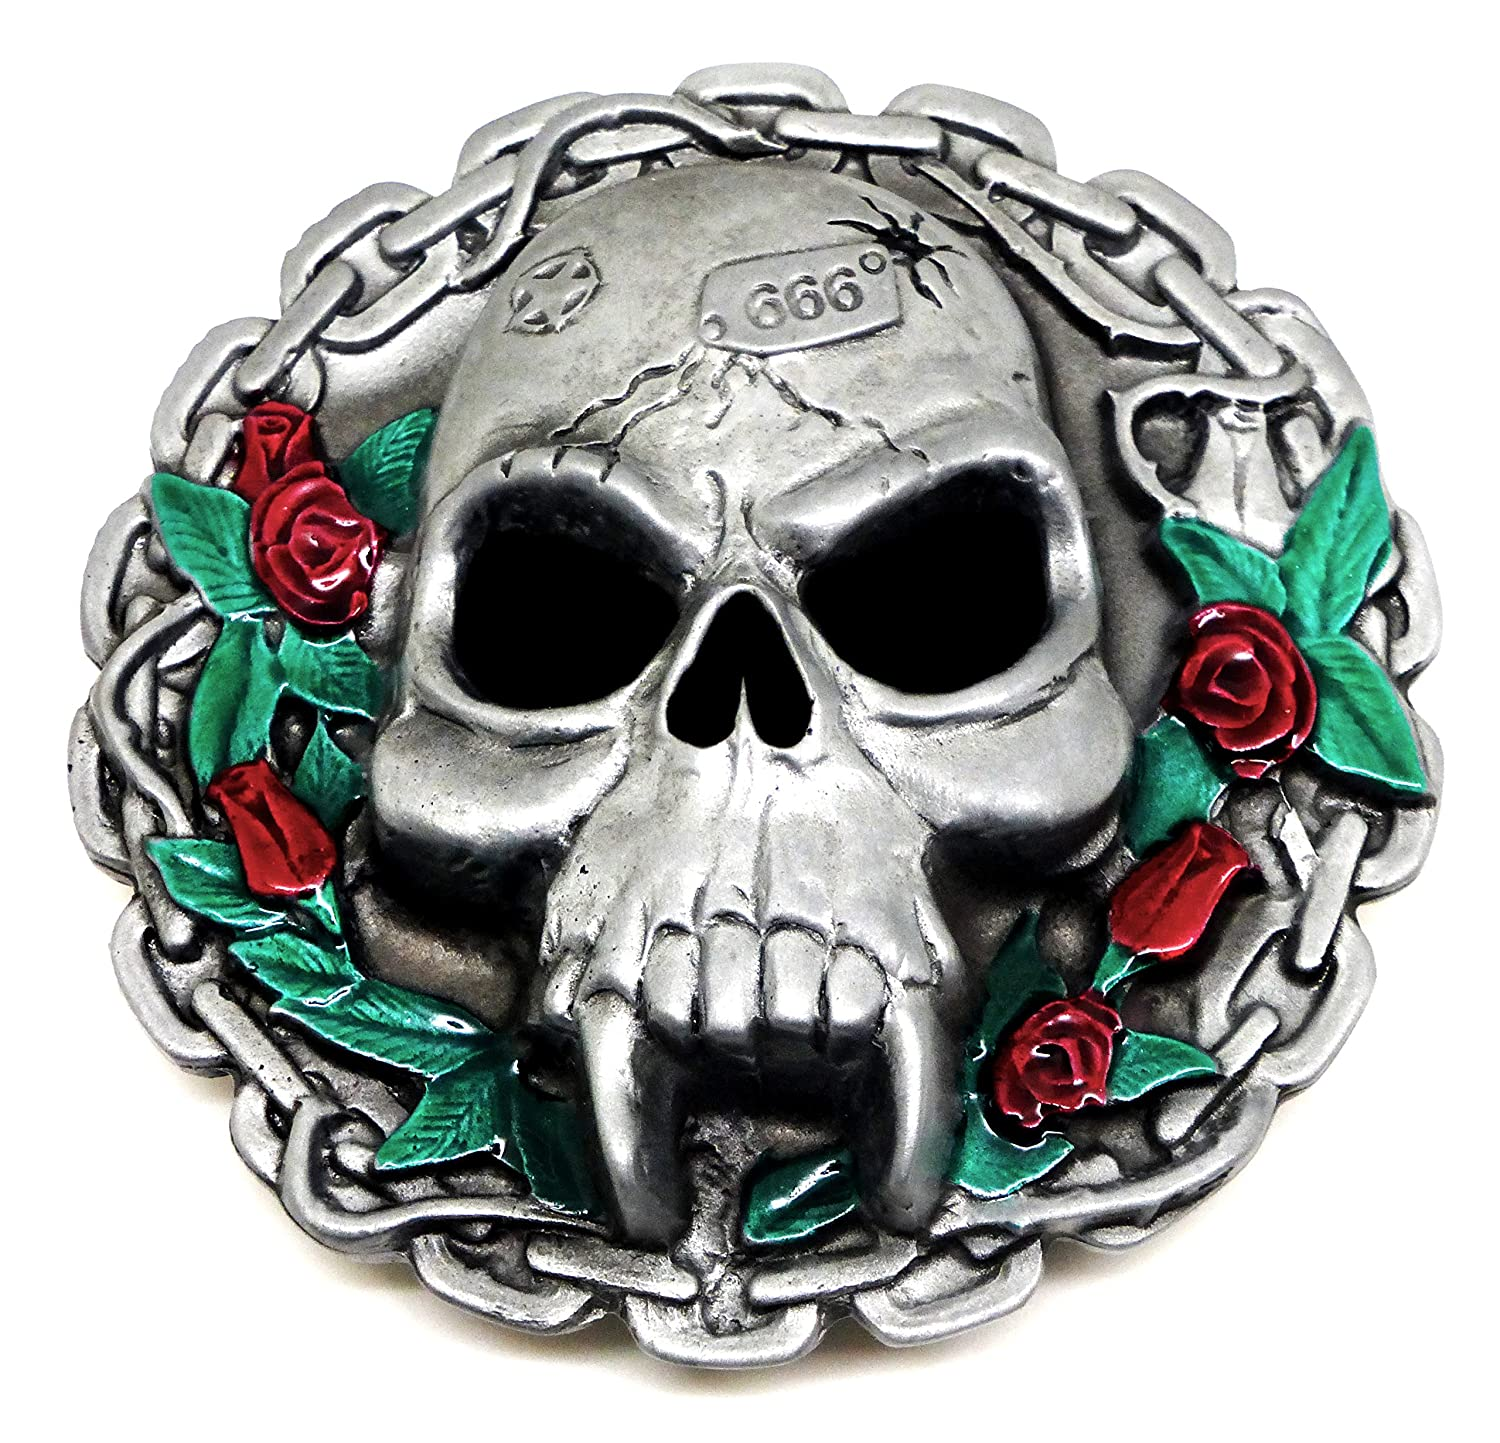 Skull Belt Buckle Vampire With Chain & Roses Design Authentic Ultimate Buckles Branded Product (Dragon Designs) DDU 1081